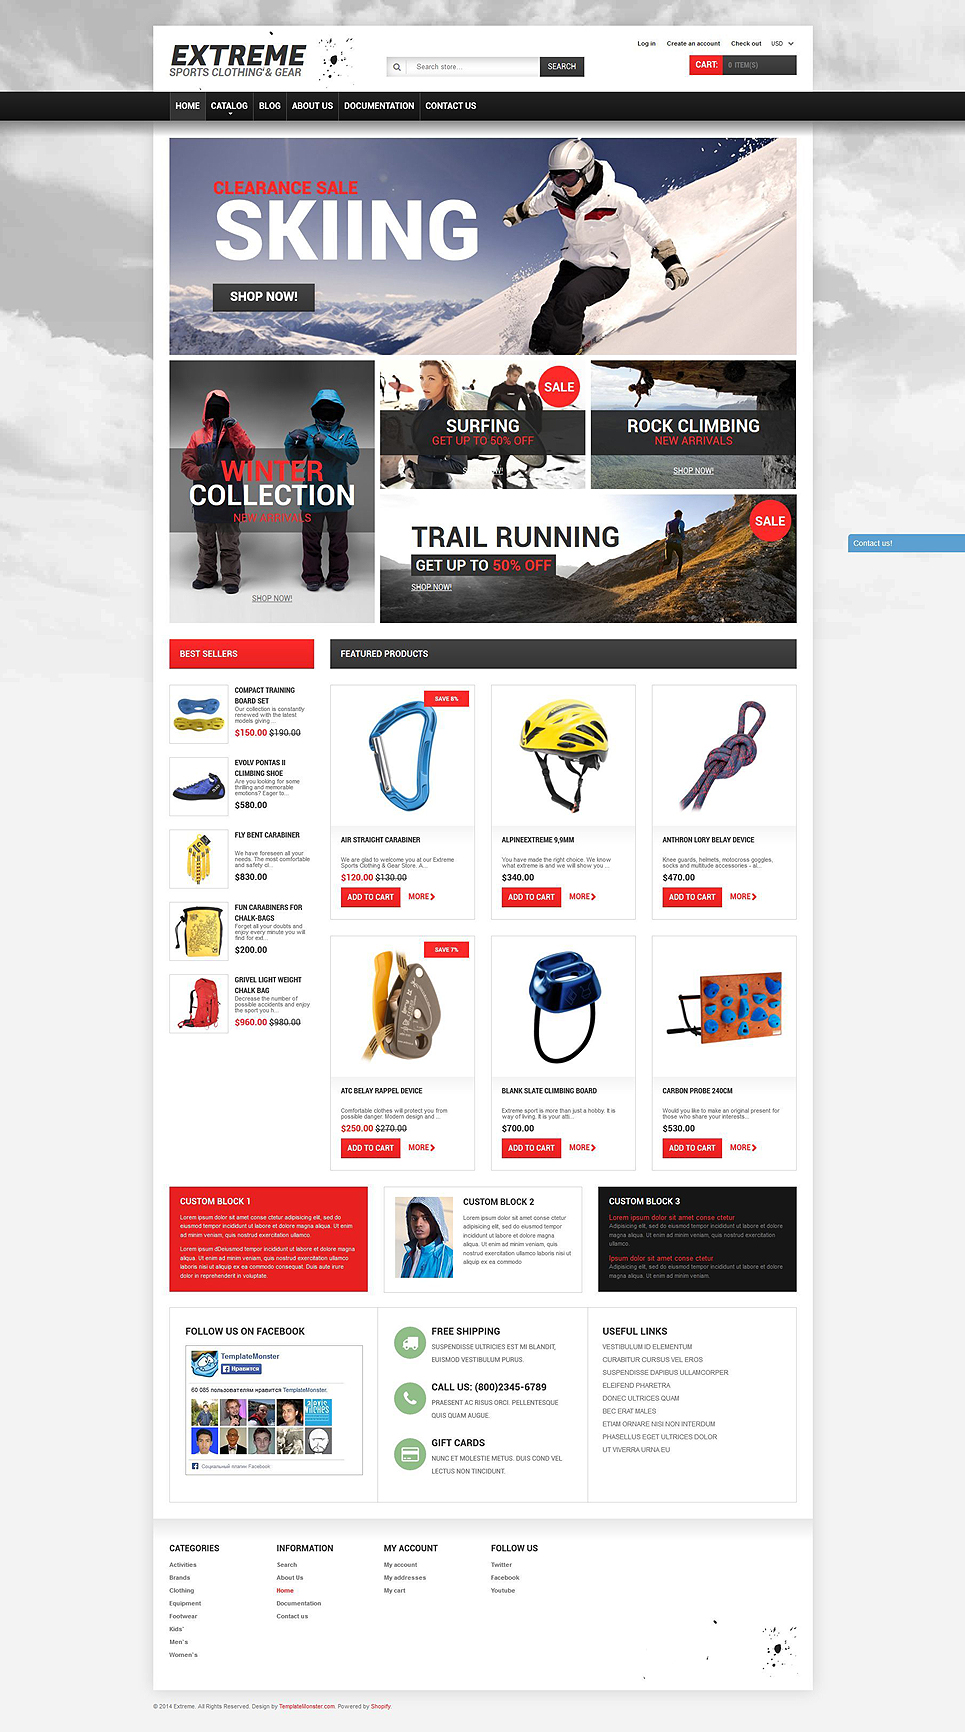 Live demo for Extreme Sports Gear Shopify Theme #51377